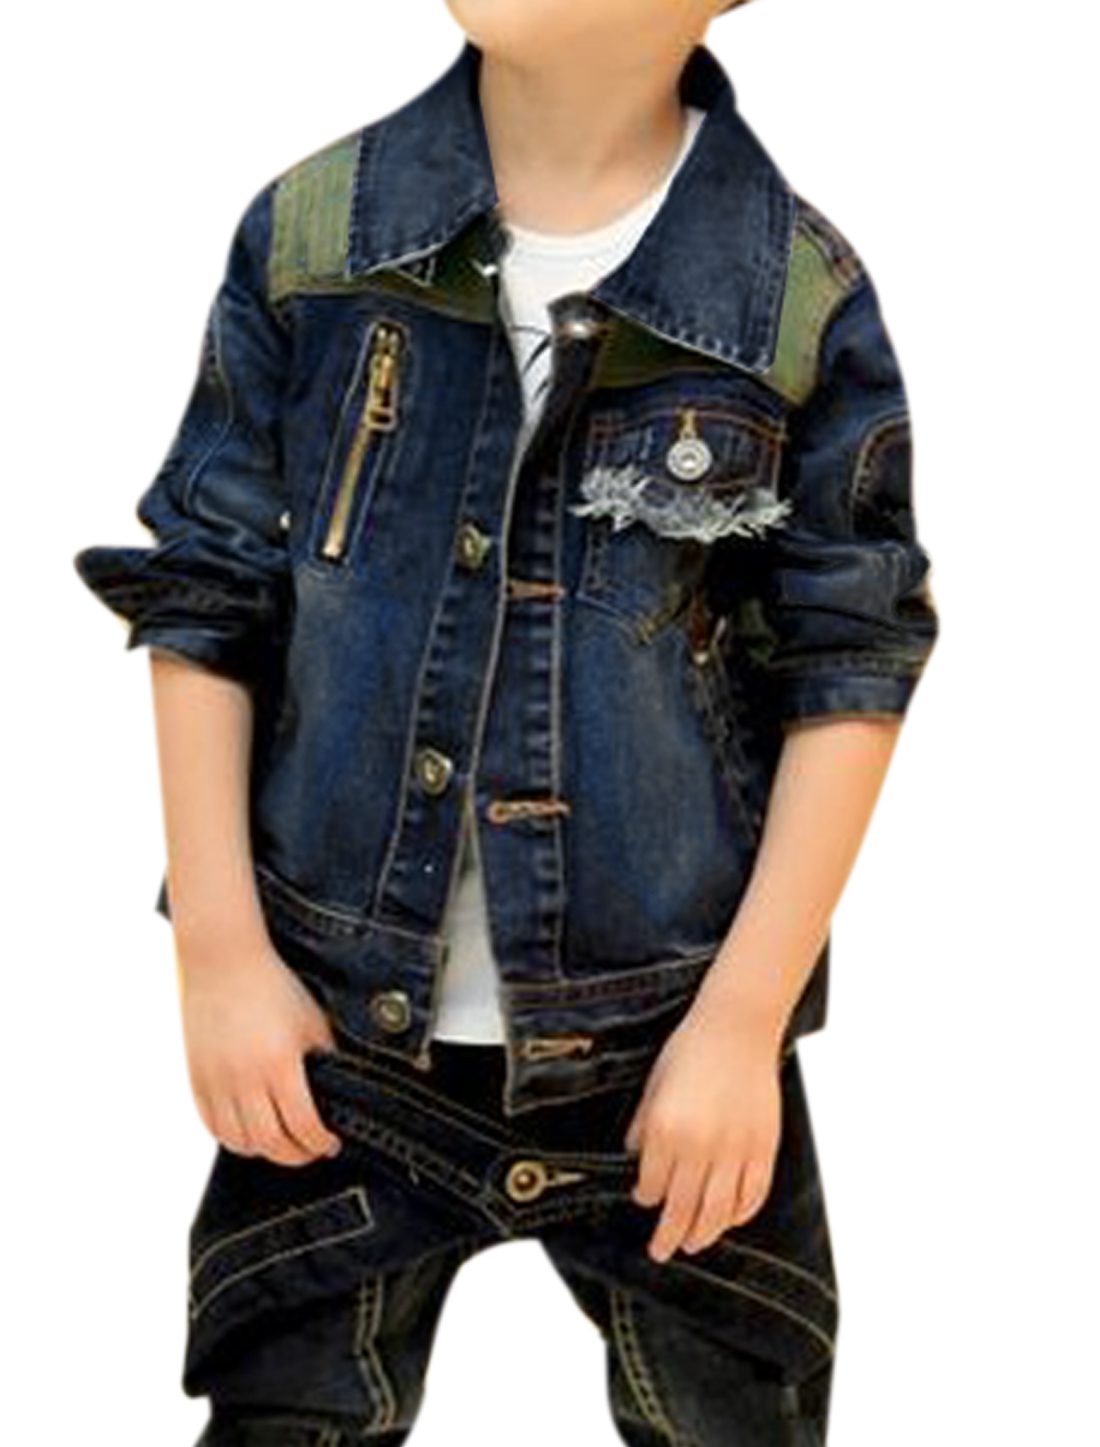 NEW 3 Pockets Design Button Front Dark Blue Denim Coat Jacket for Boy 10